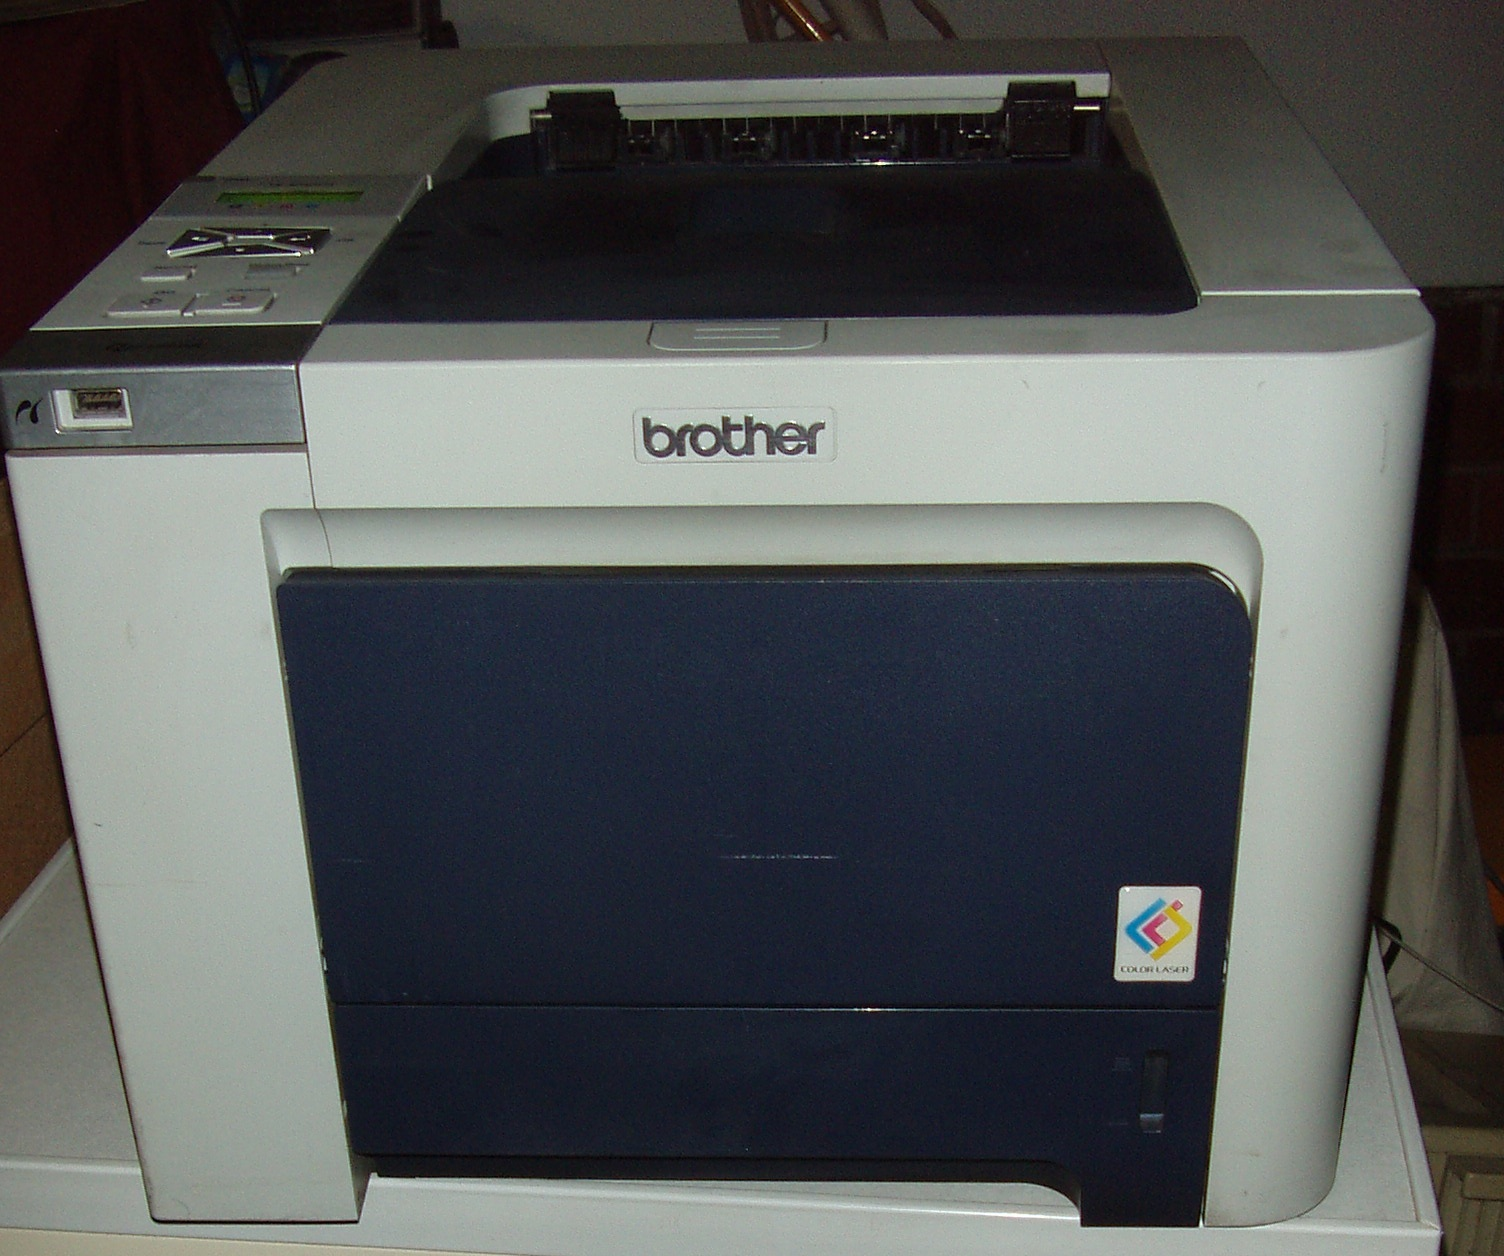 BROTHER 4040CN DRIVER FOR WINDOWS 7